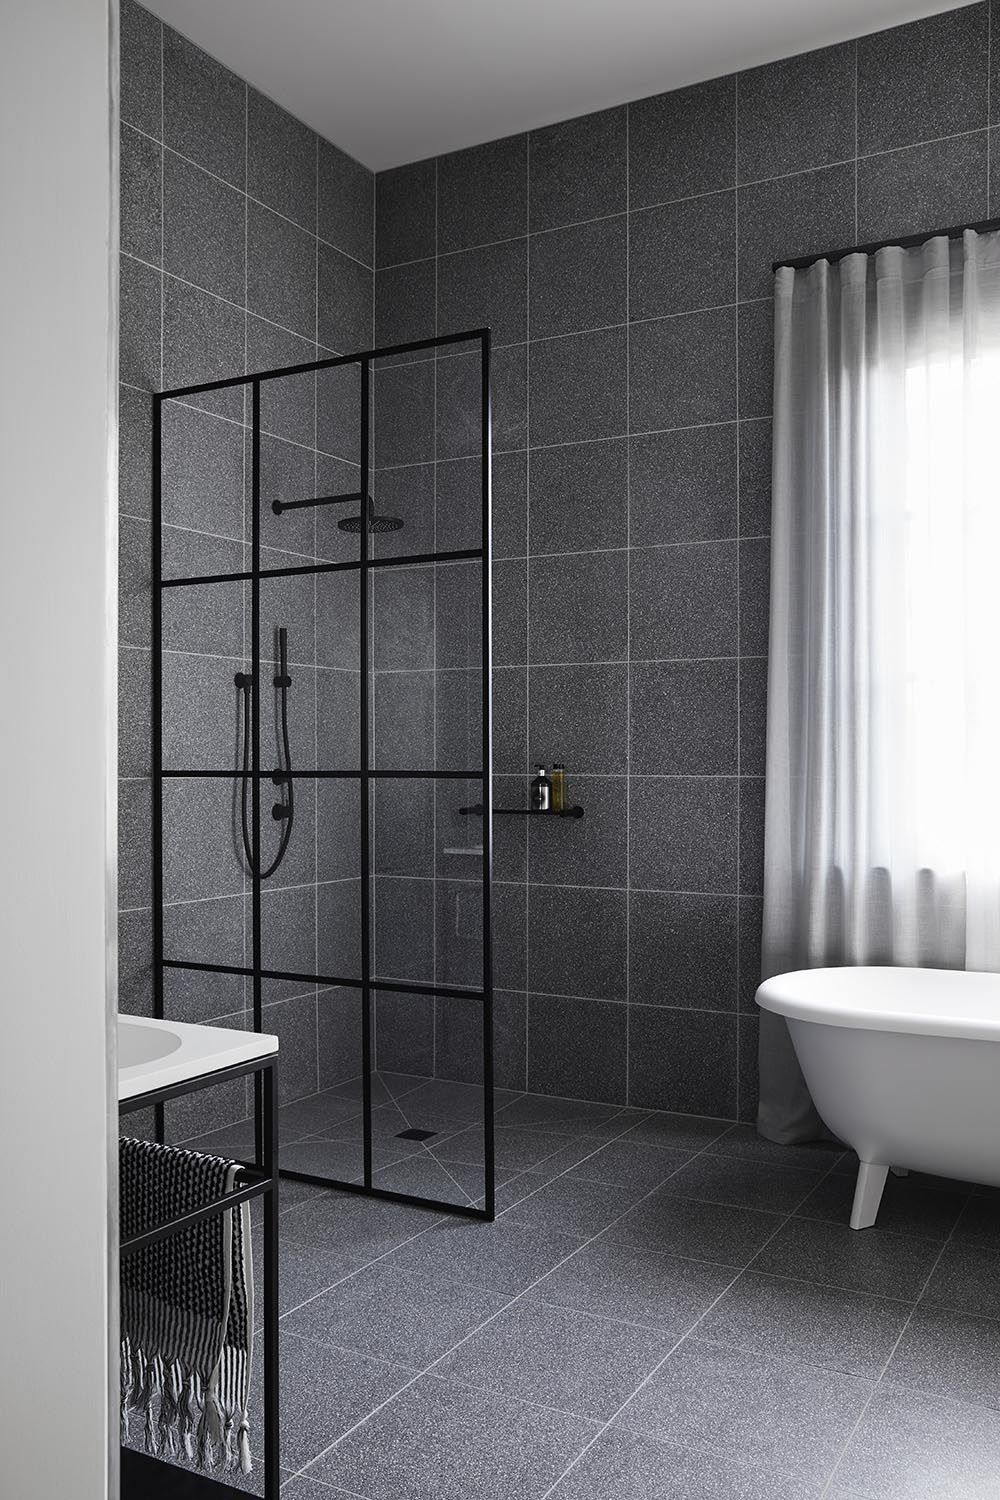 Modern grey and black bathroom with terrazzo tile covered walls, and a black framed glass shower screen.